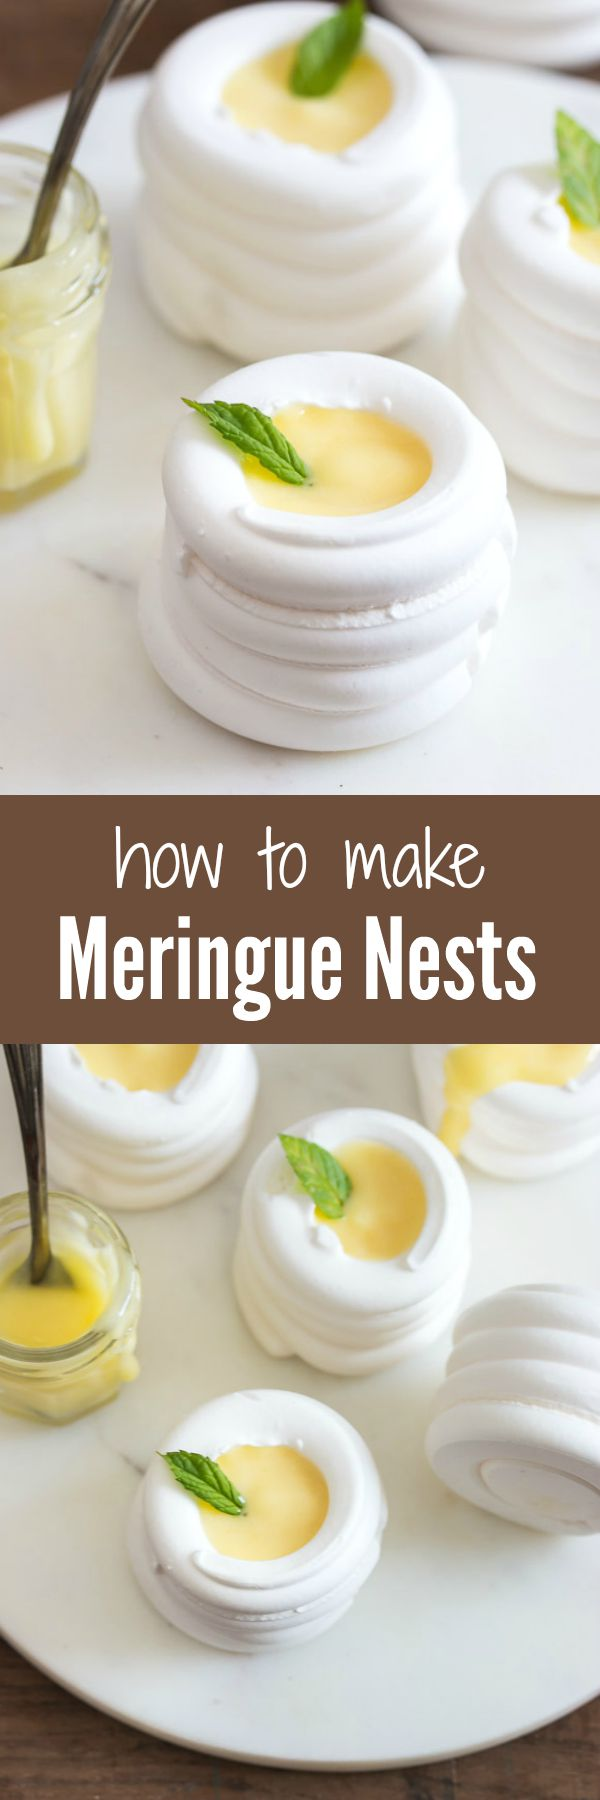 Soft and crunchy meringue nests that will melt in your mouth. Make them large or mini, and fill them with anything you want.   prettysimplesweet.com